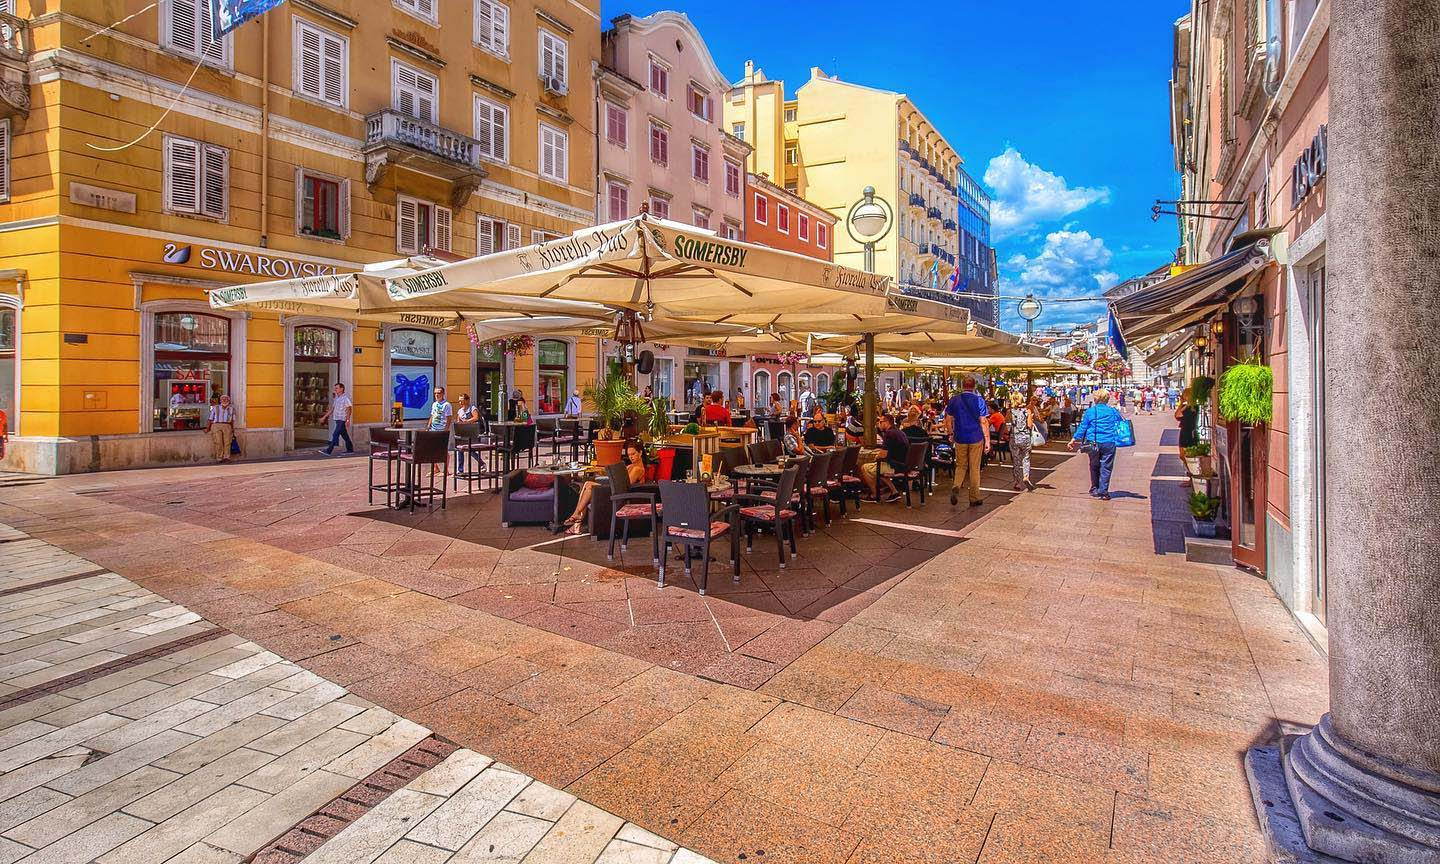 5 must-see places in Rijeka